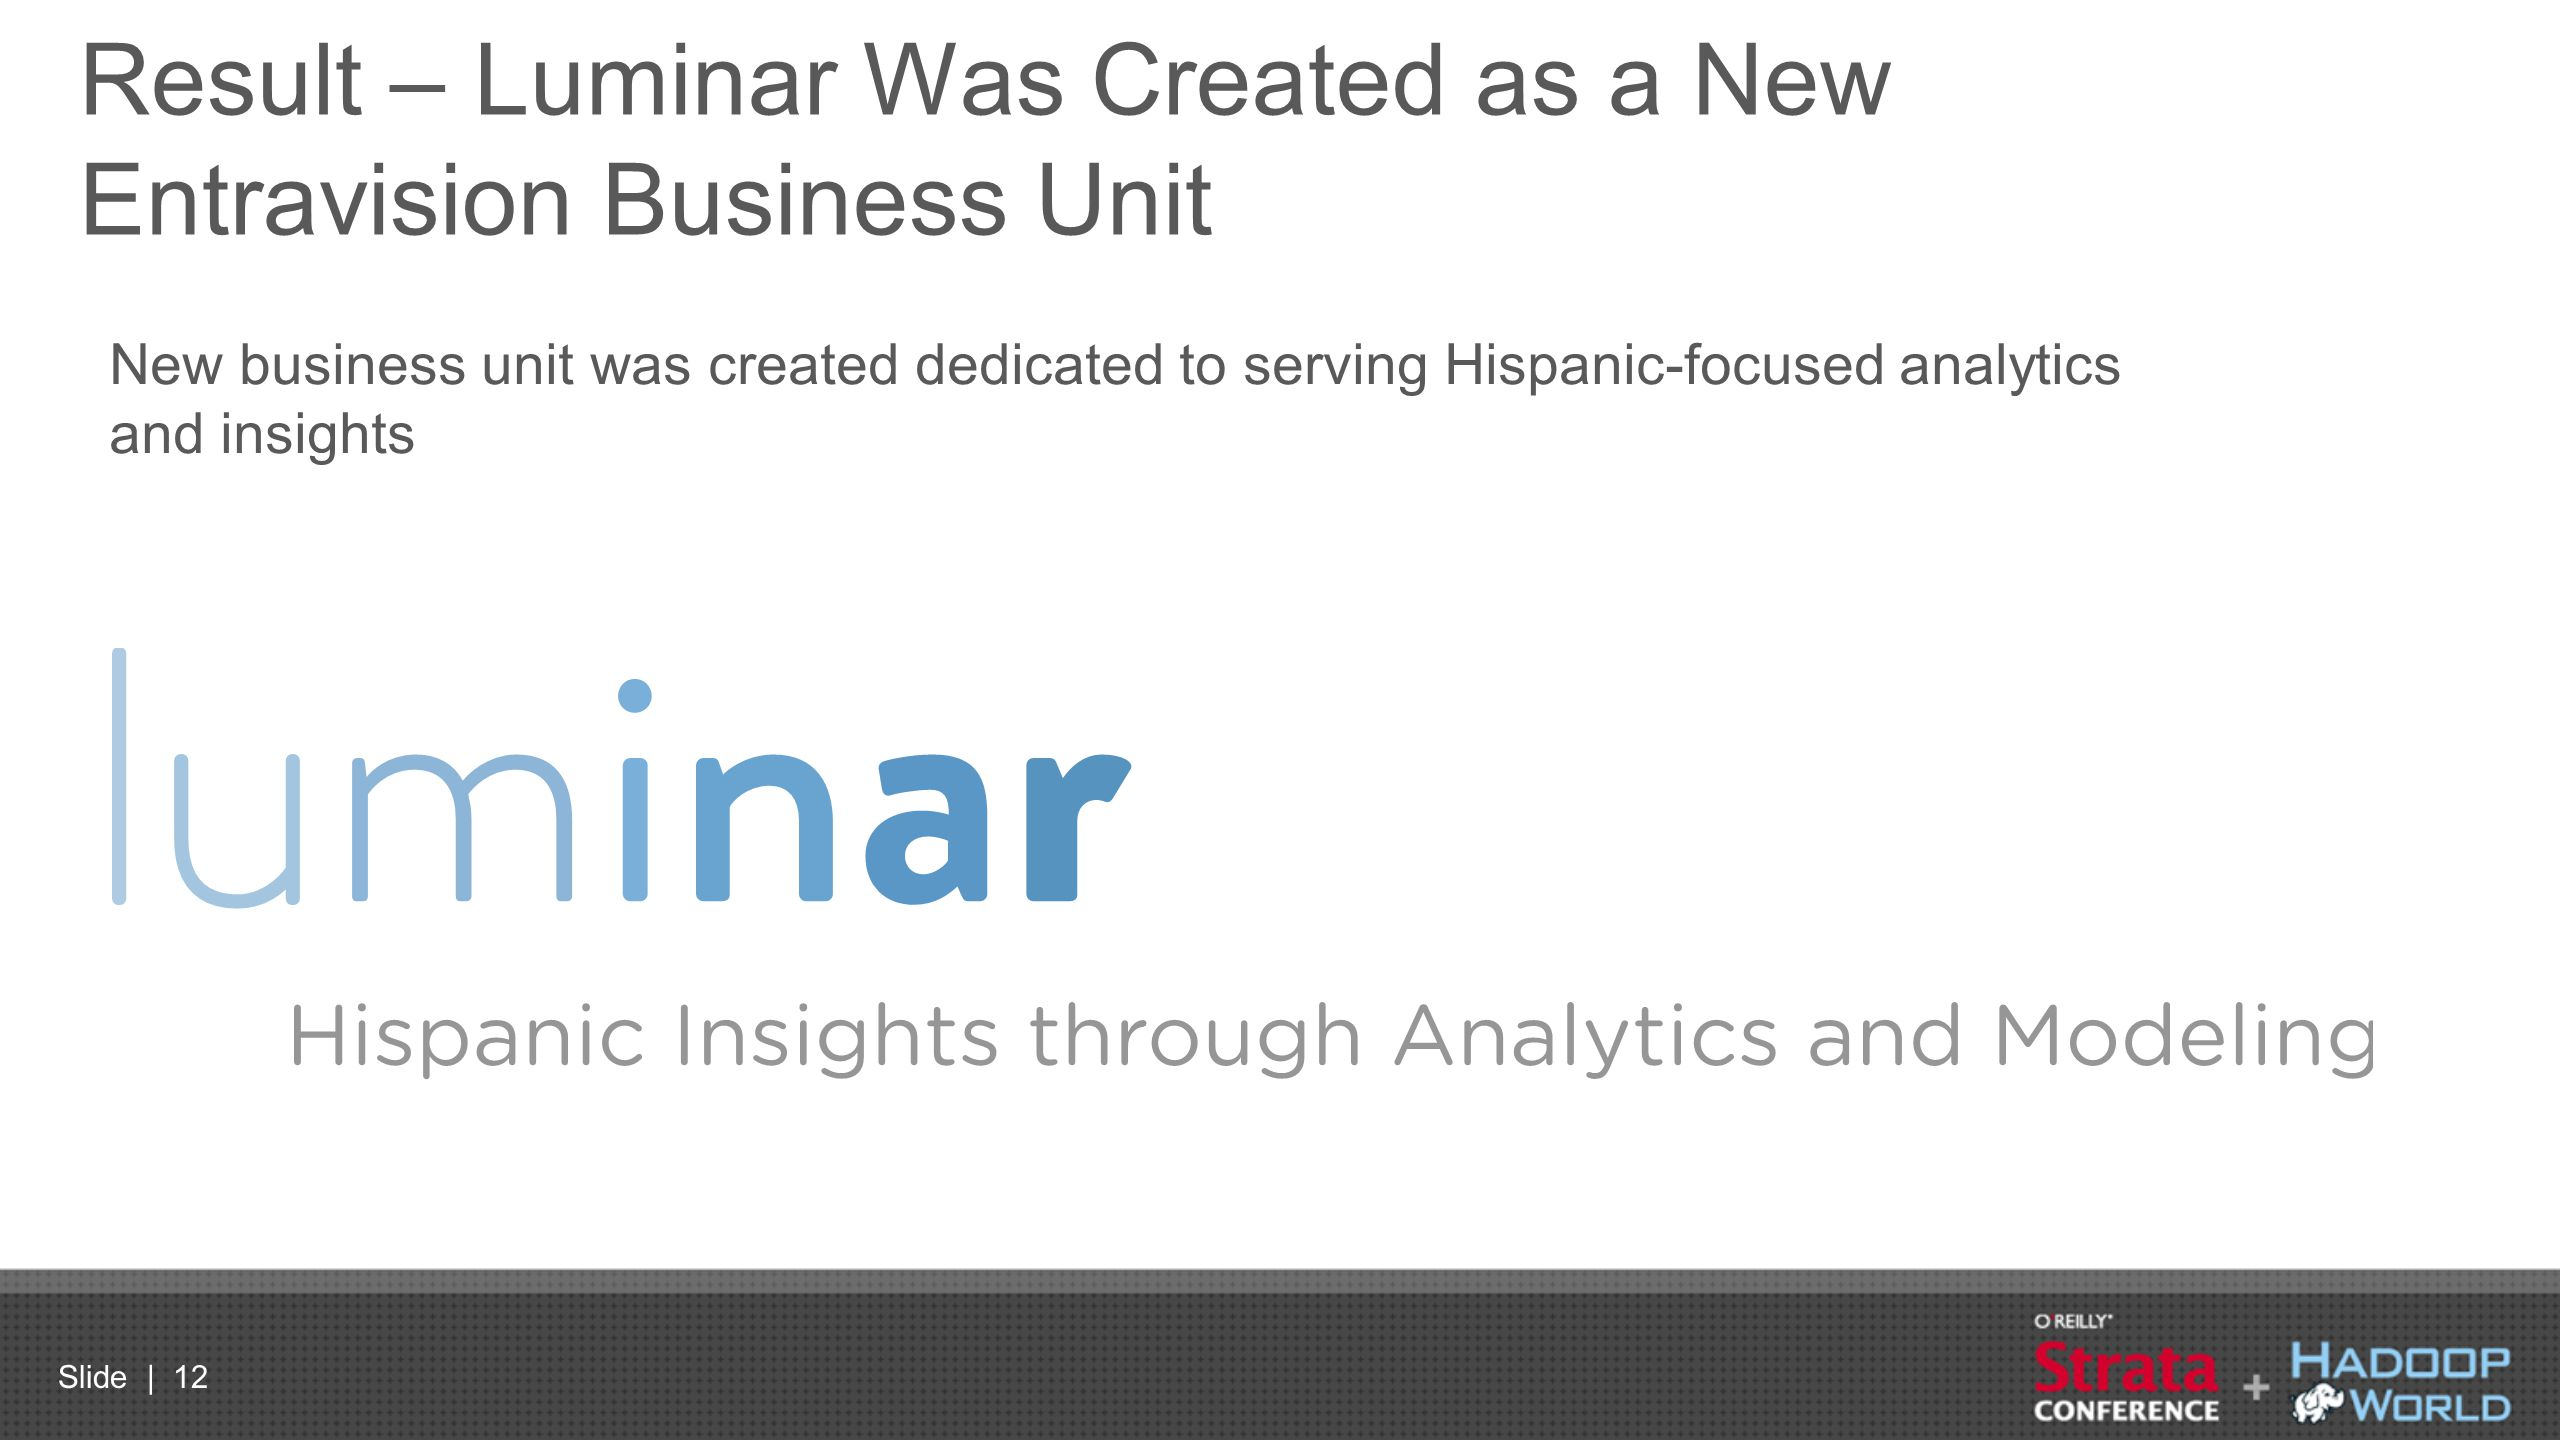 Result – Luminar Was Created as a New Entravision Business Unit